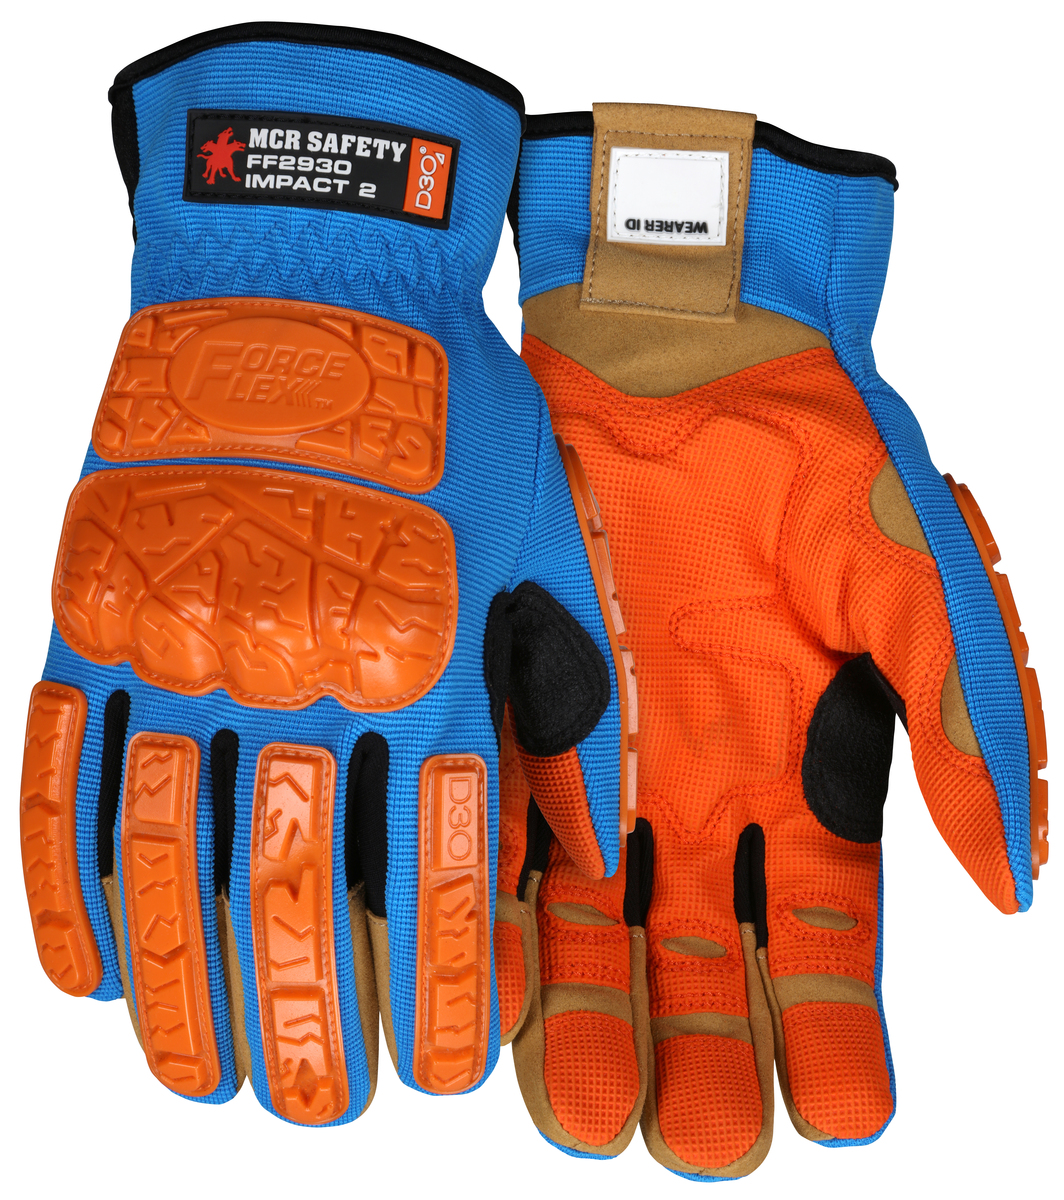 MCR Safety ForceFlex® MaxGrid™ Reinforced Padded Palm Mechanics Gloves